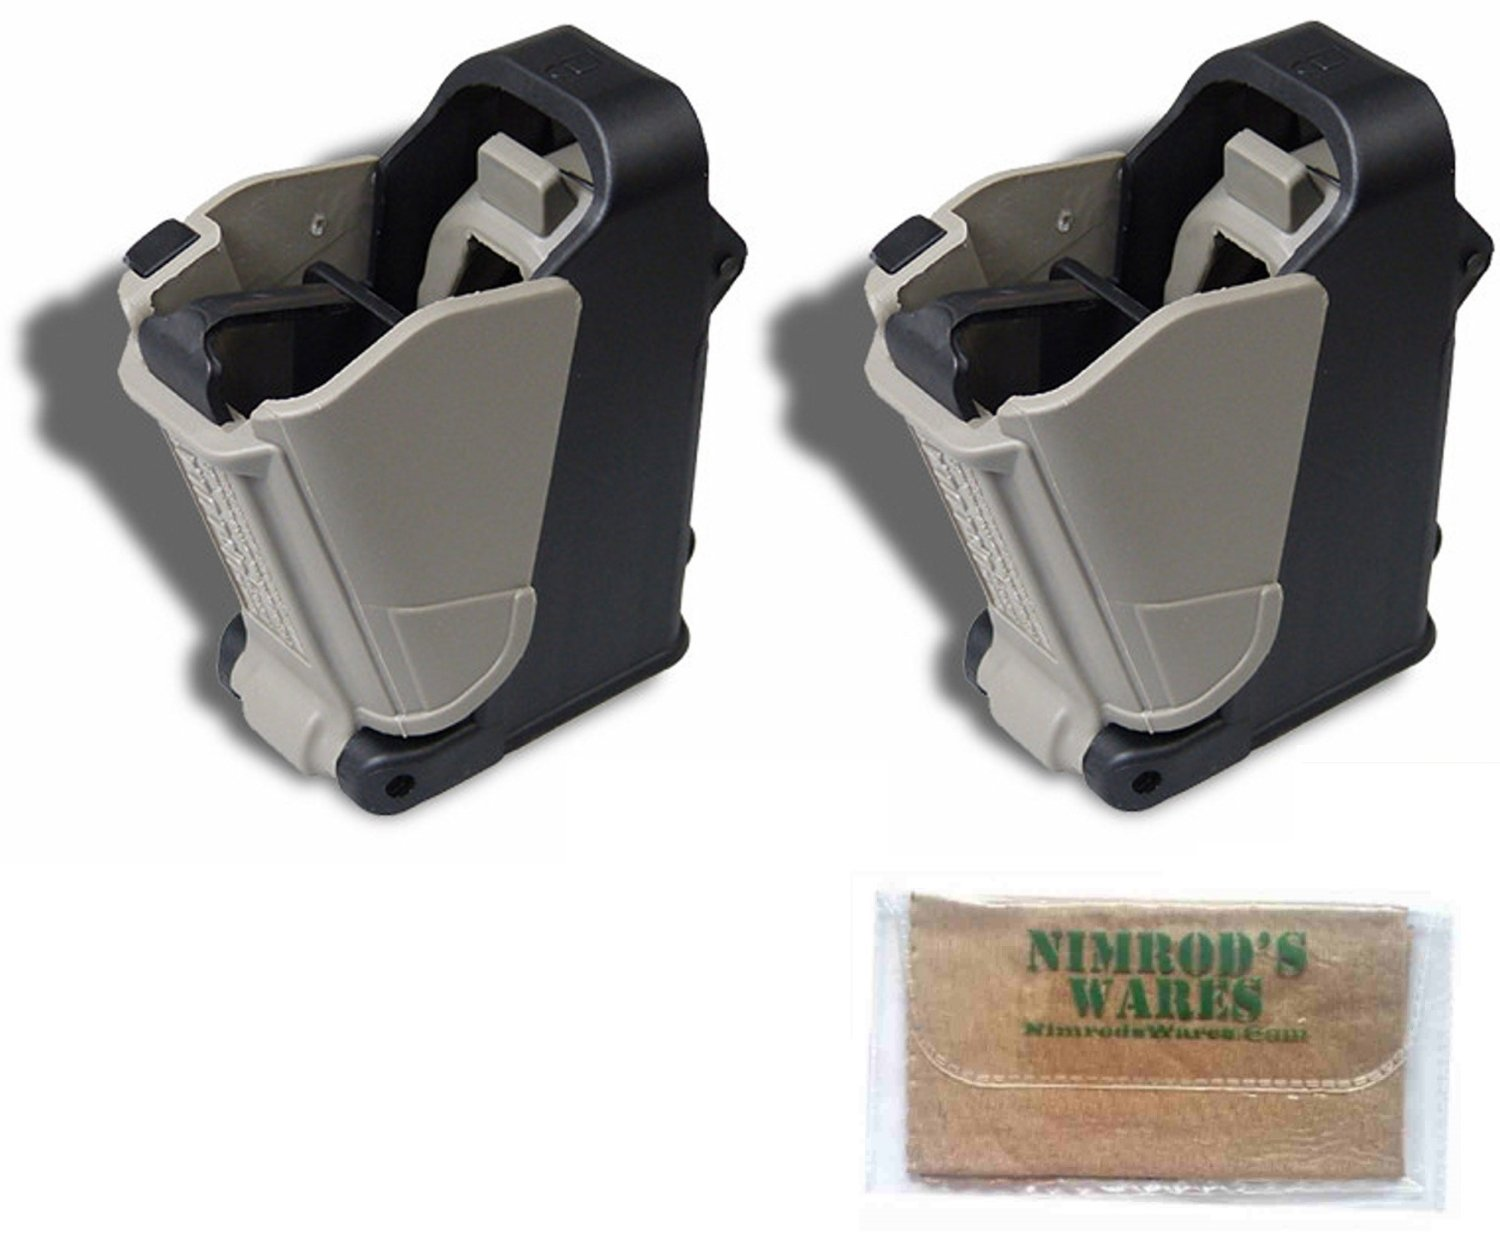 Nimrod's Wares 2-Pack MAGLULA 22LR Double-Stack+Converted Magazine Loader/Unloaders UP62B Microfiber Cloth